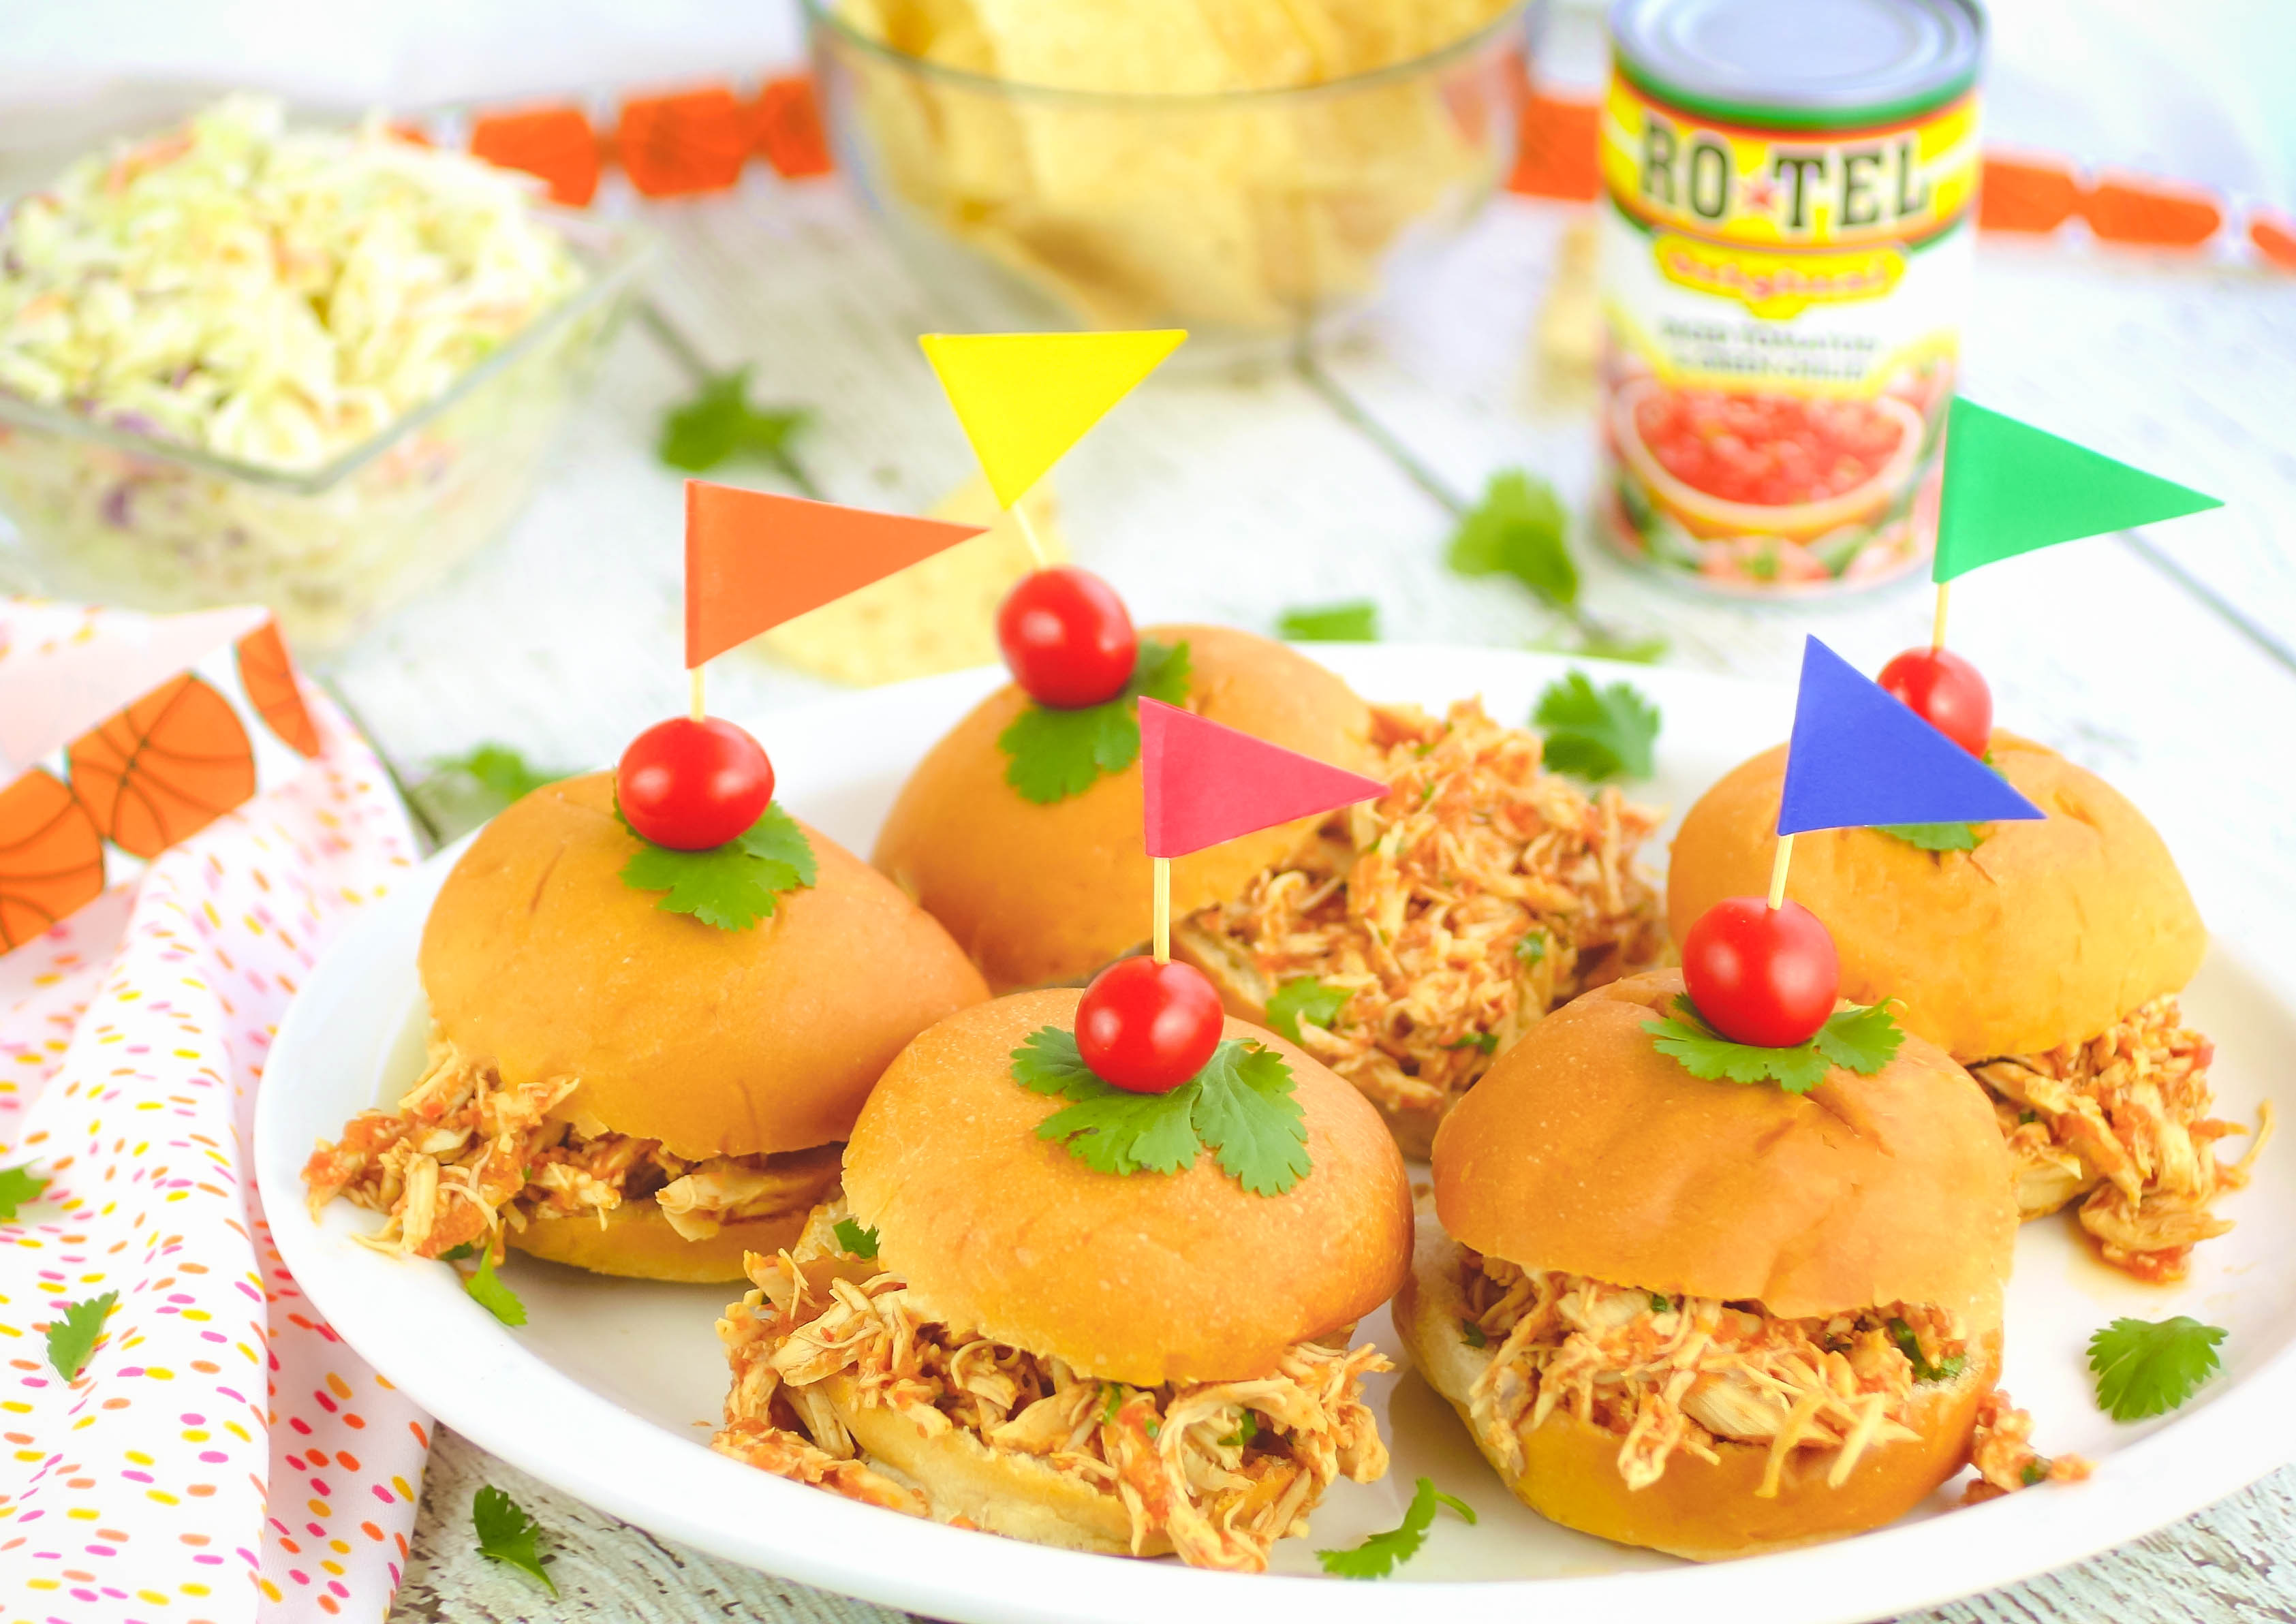 Slow Cooker Southwestern Pulled Chicken Sandwiches are ideas for parties. You'll love these Slow Cooker Southwestern Pulled Chicken Sandwiches.